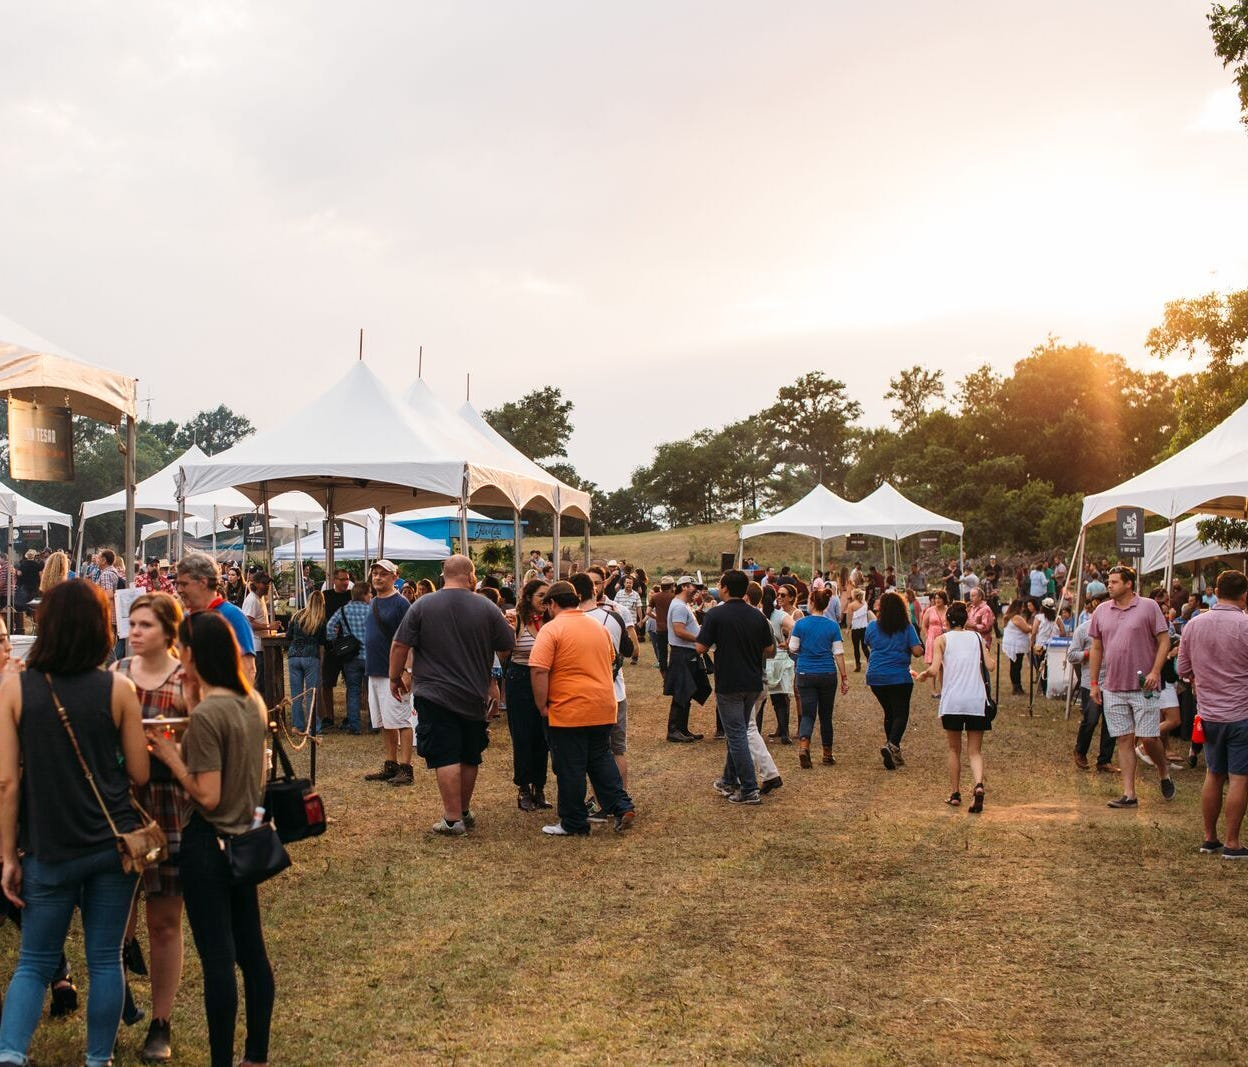 Hot Luck Festival returns to Austin, Texas, May 24–27. The second annual event will feature more than 60 hot chefs (Aaron Franklin, Steve McHugh, Ashley Christensen), a variety of tasting events and live music.